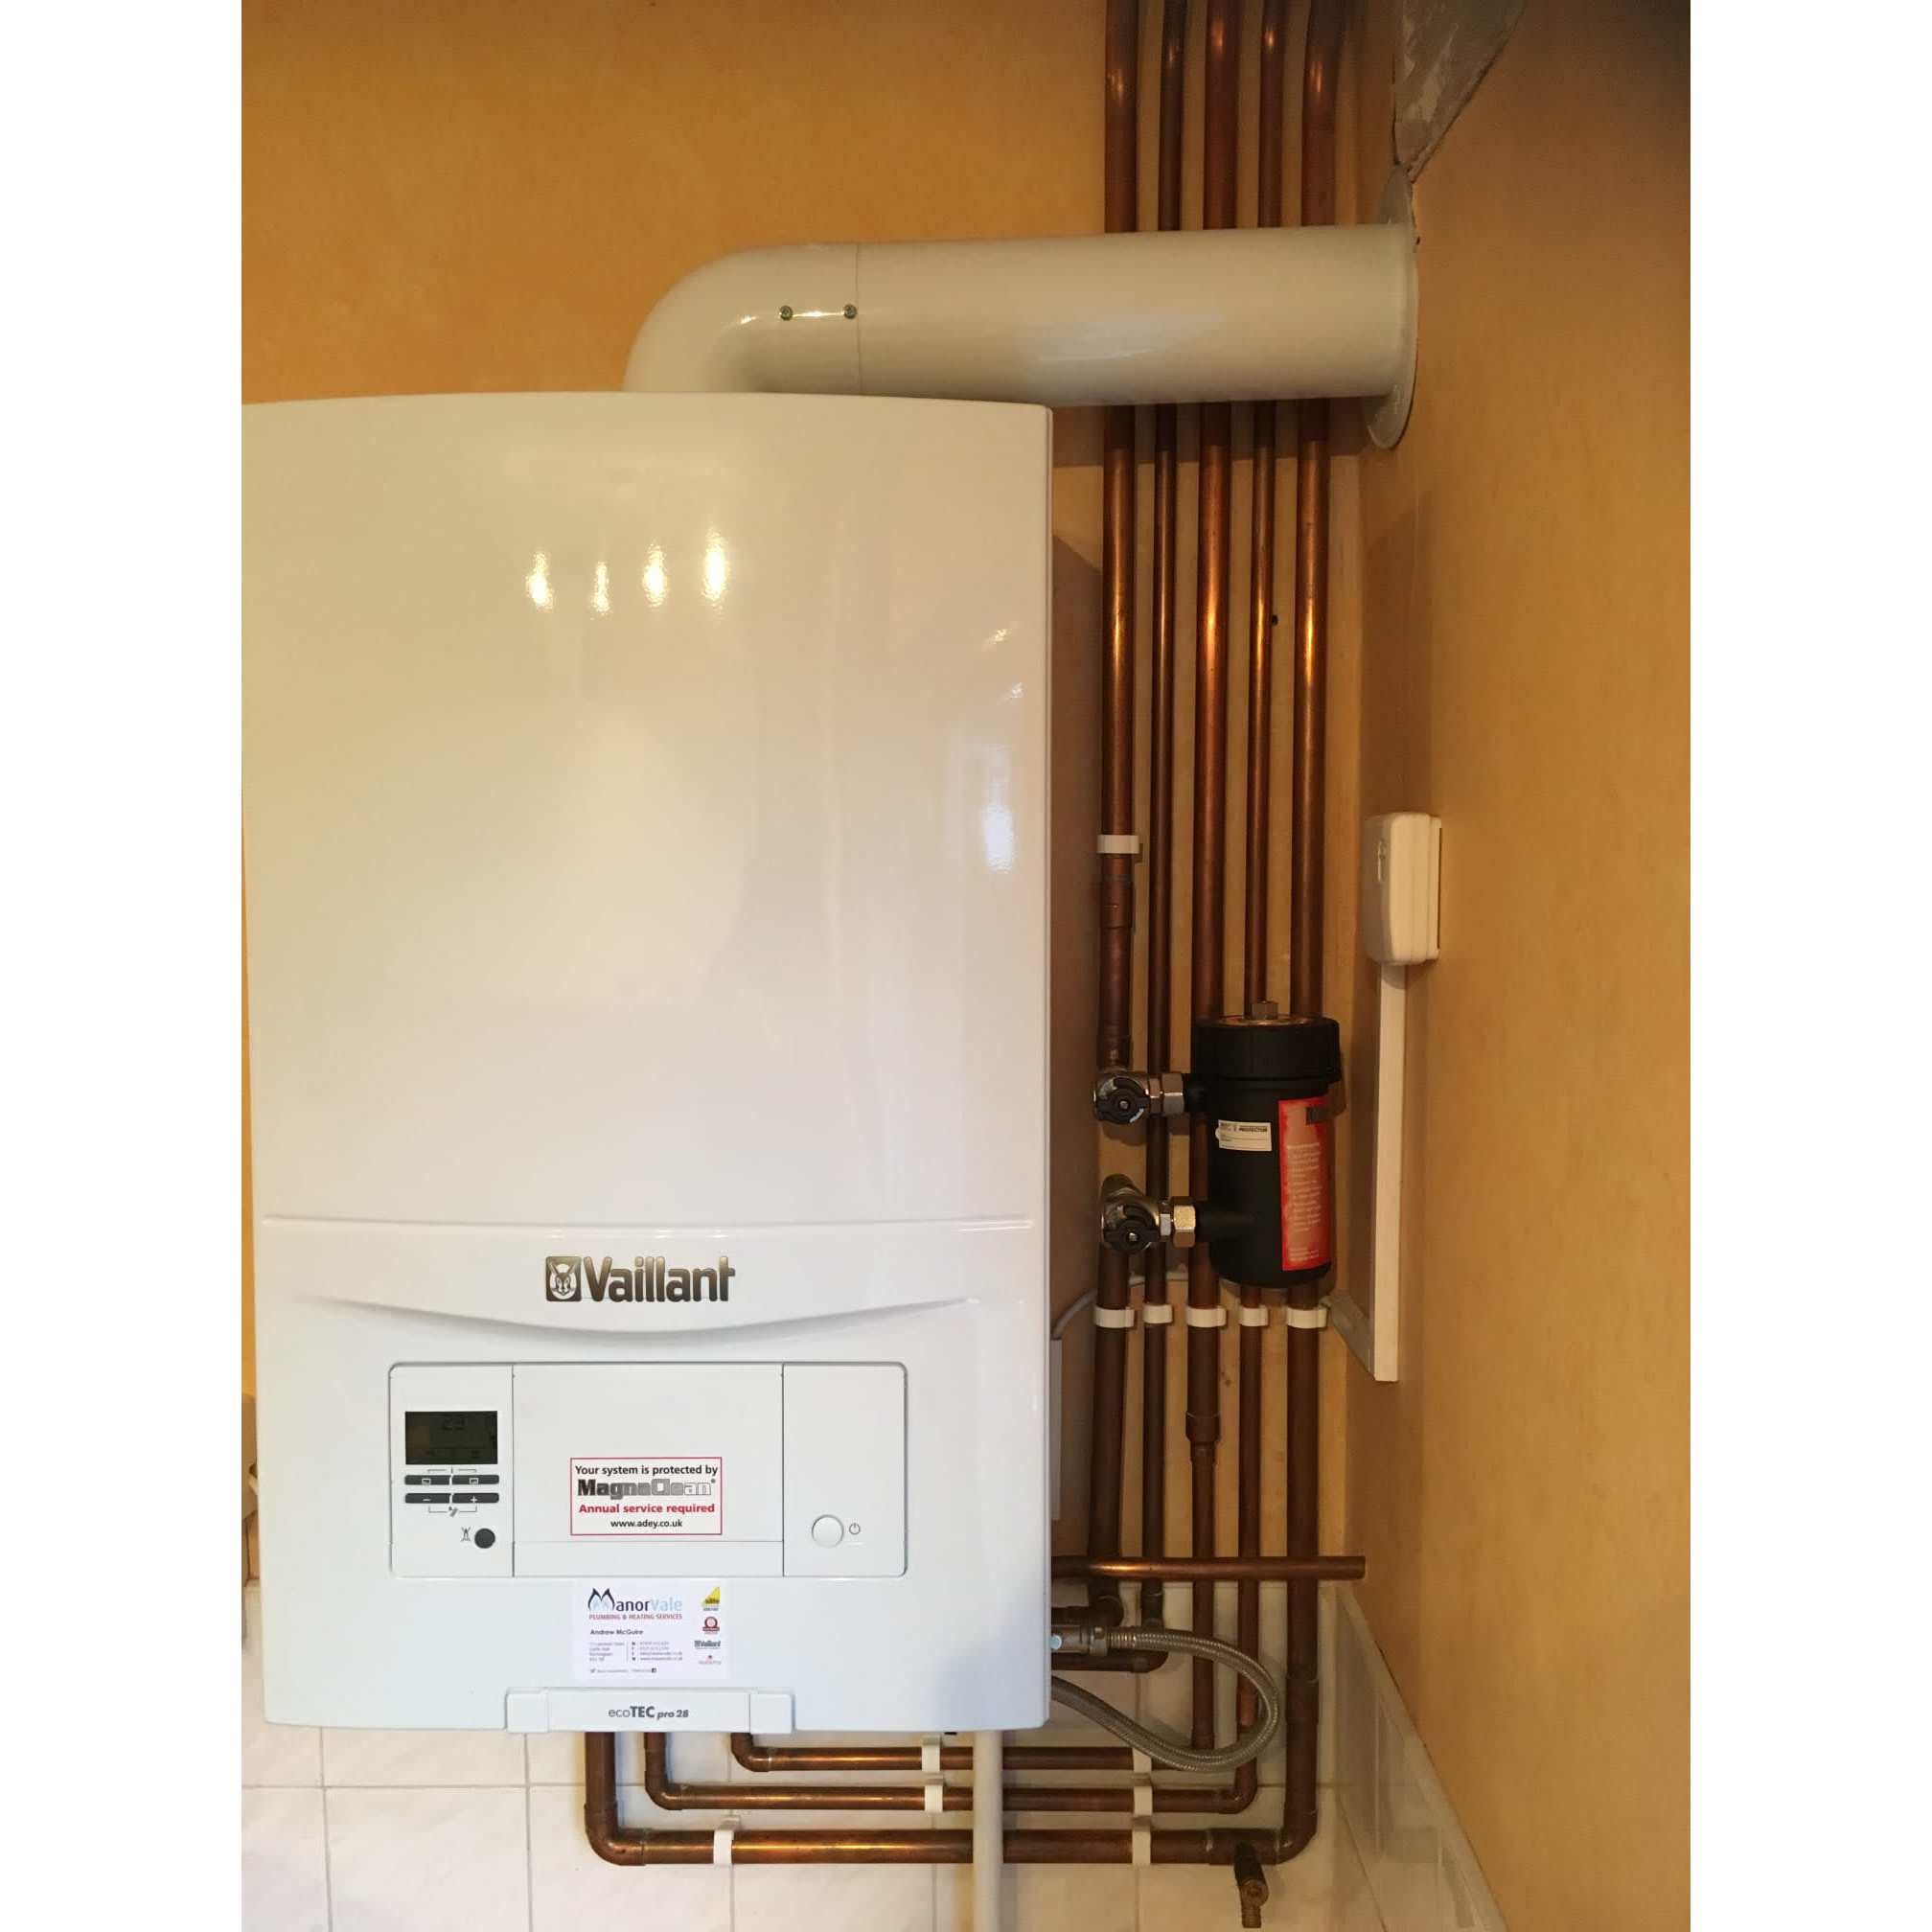 Manor Vale Plumbing And Heating Services - Birmingham, West Midlands B35 6JR - 07429 415639 | ShowMeLocal.com